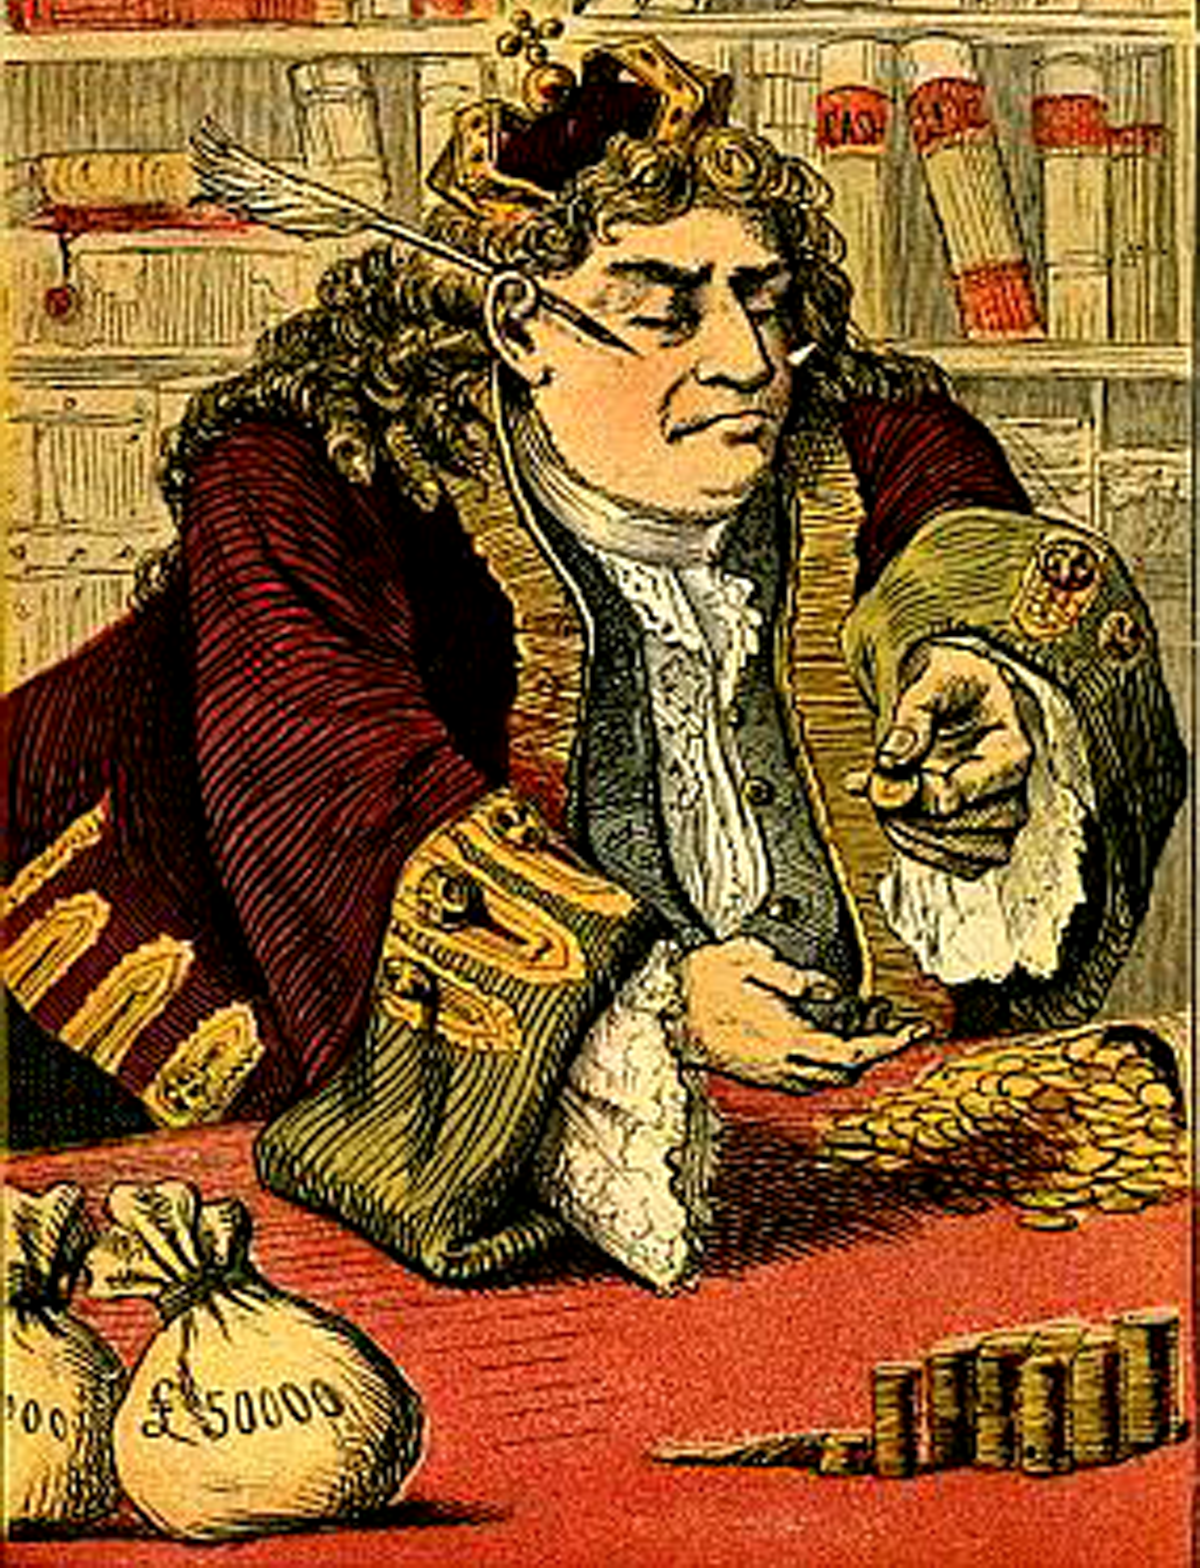 Illustration of king counting his mo ey from Sing a Song of Sixpence